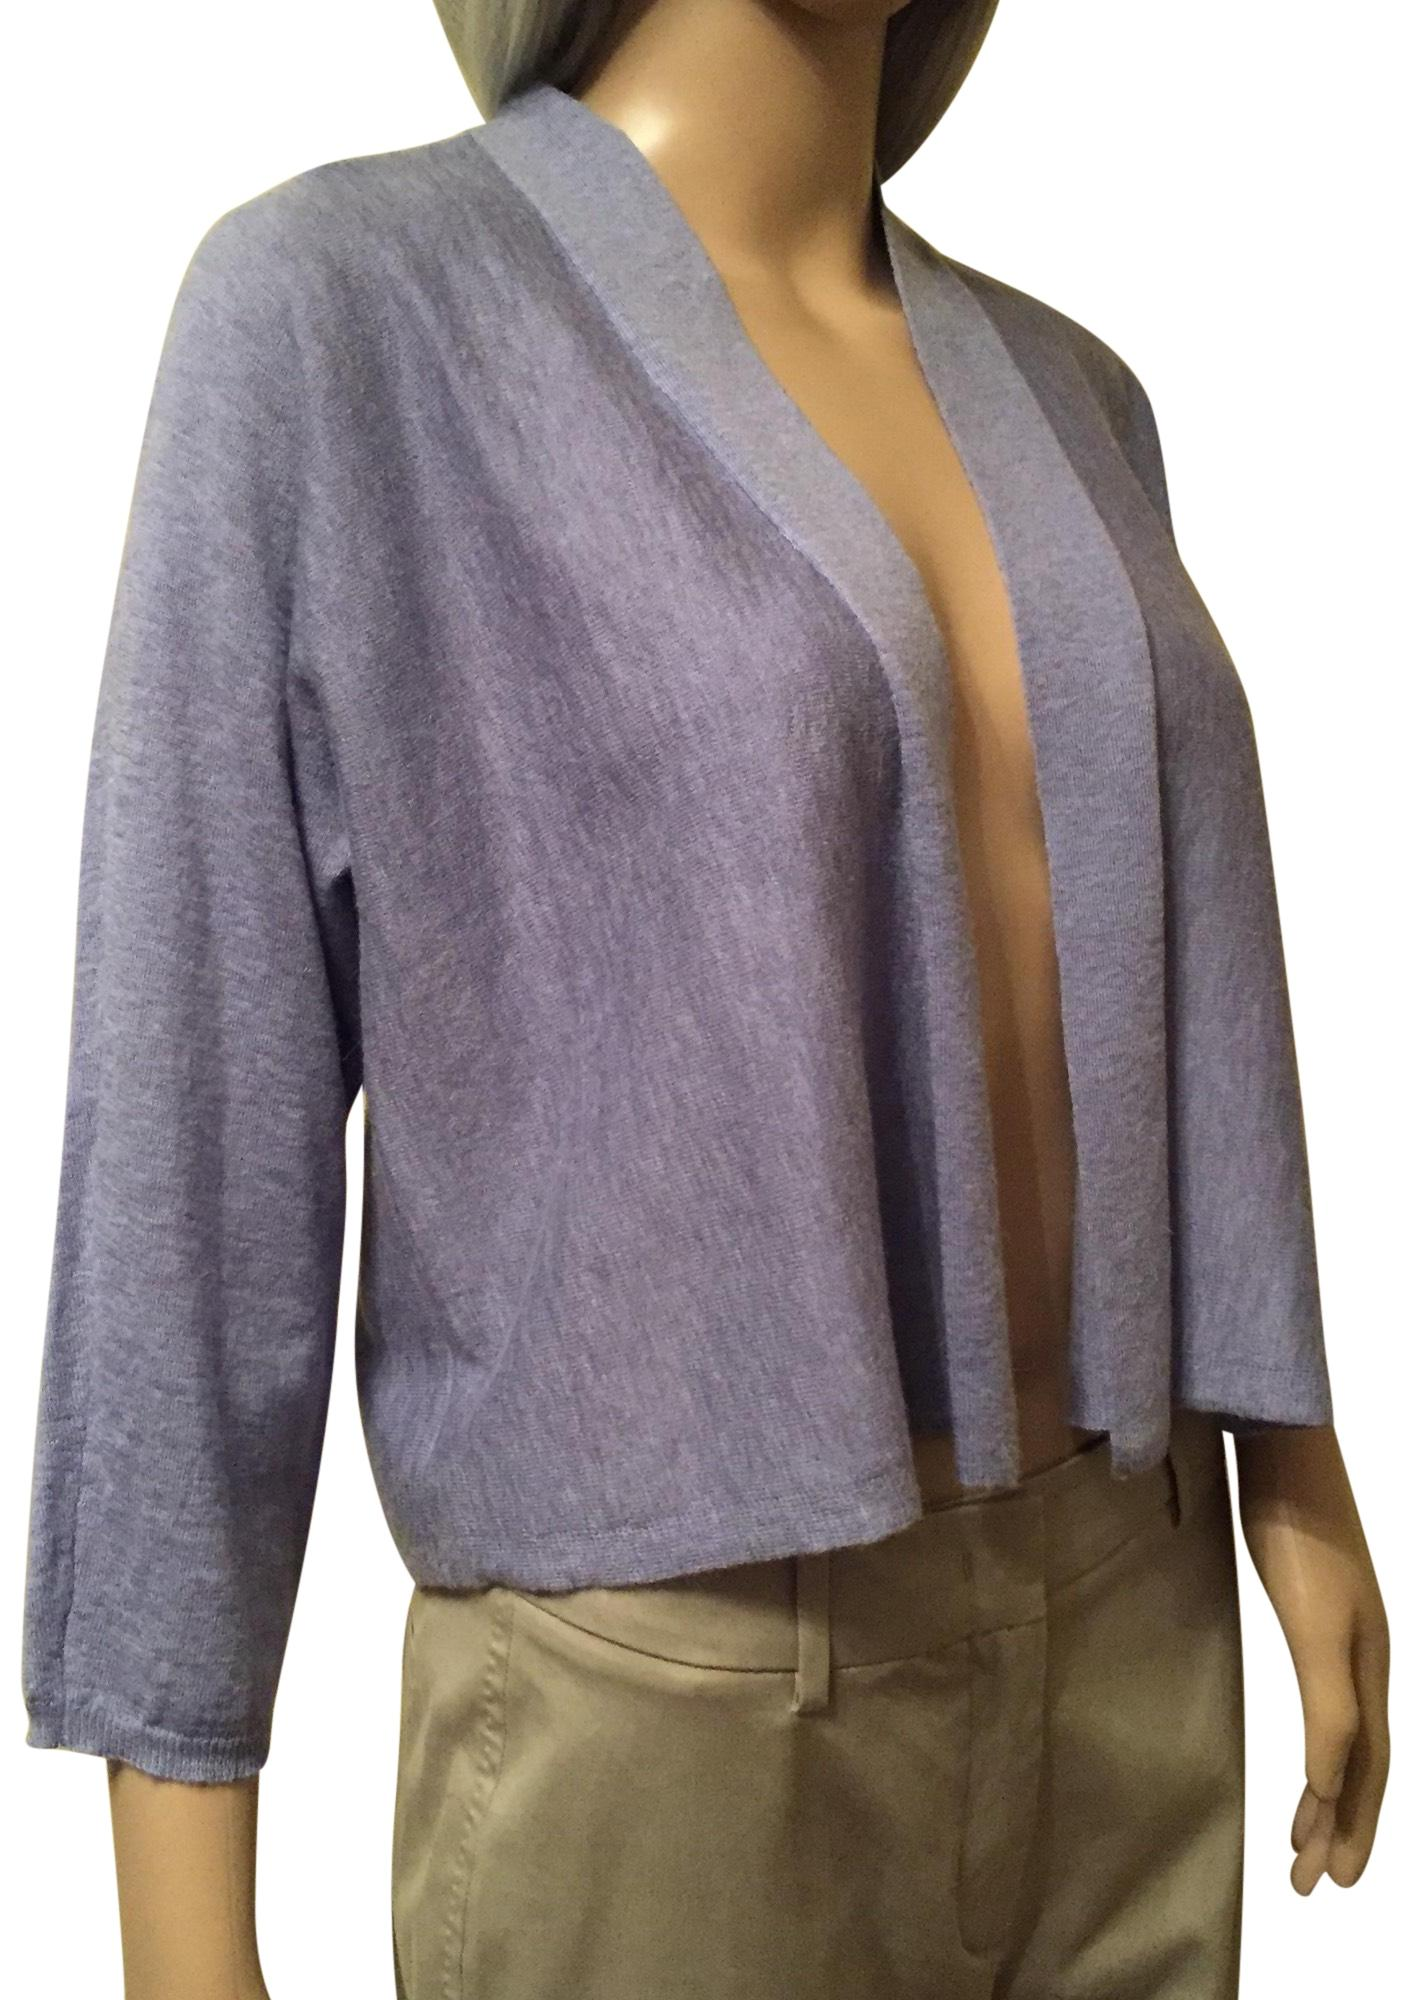 Lavender Cropped Cardigan 41